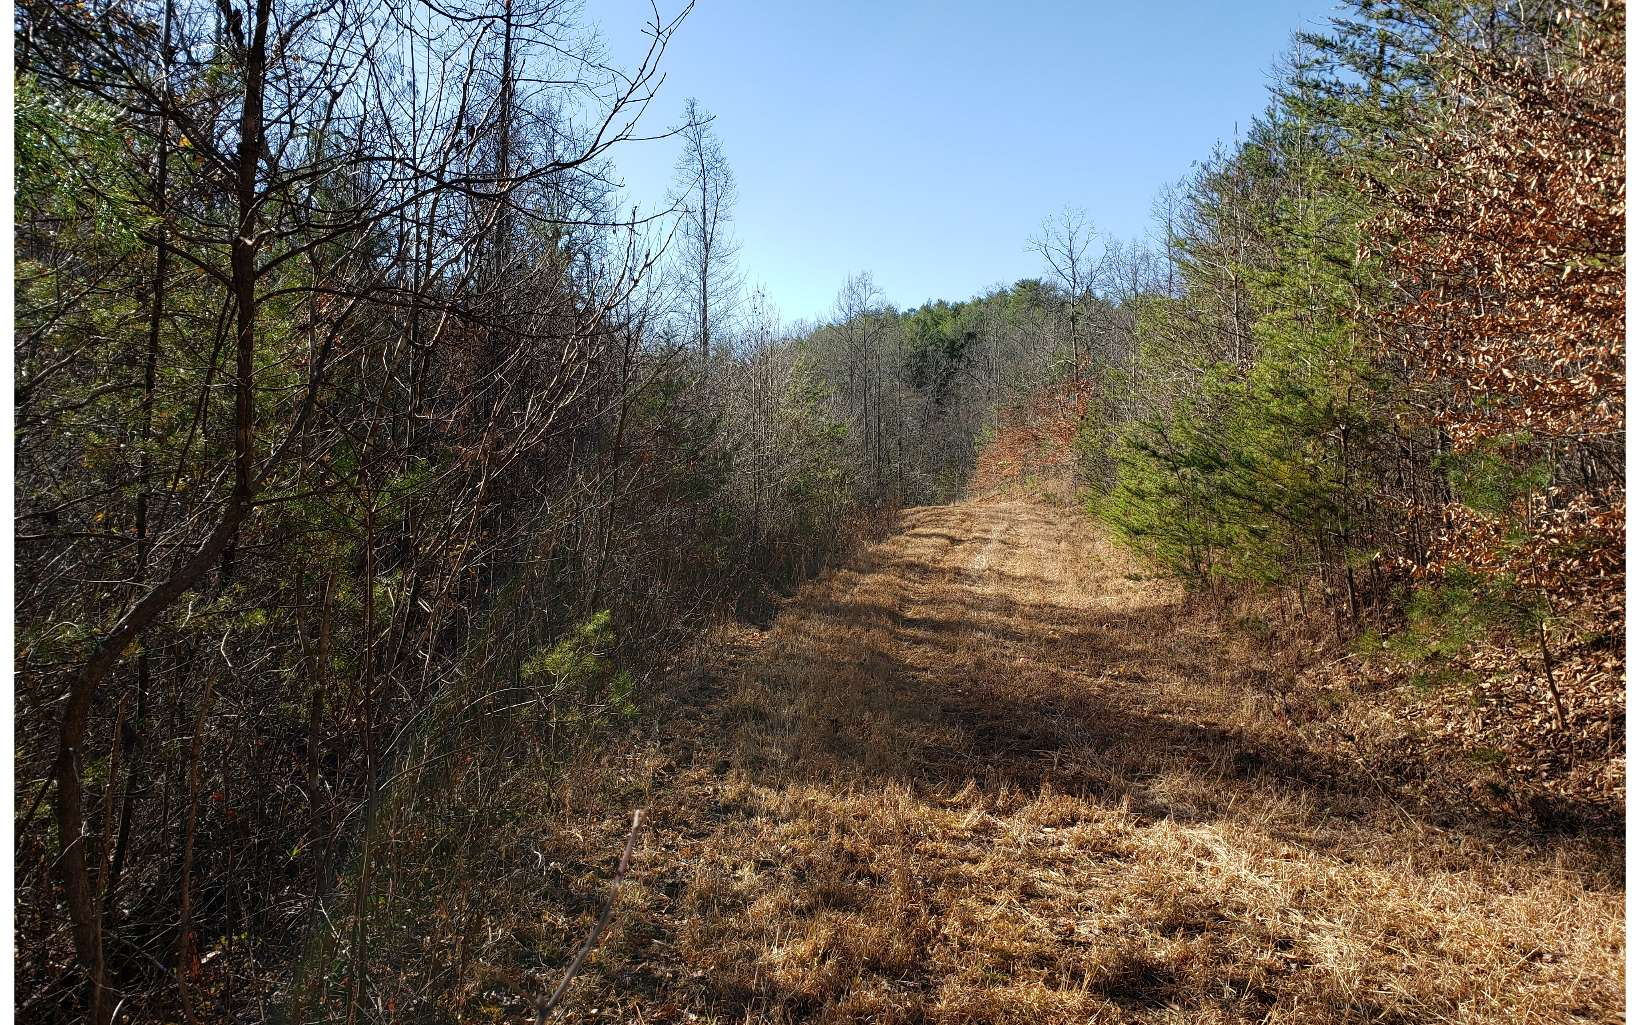 6.44 Acres with Branch running thru property. Septic Tank and Private Well are all set. A 32 Ft. 5th Wheel on property now. Outbuilding with electric. Paved Road Frontage and Centrally Located Between Blue Ridge and McCaysville. Close to Schools, Hospital & Shopping. Within 5 miles to Toccoa River, Downtown Blue Ridge and Blue Ridge Lake.